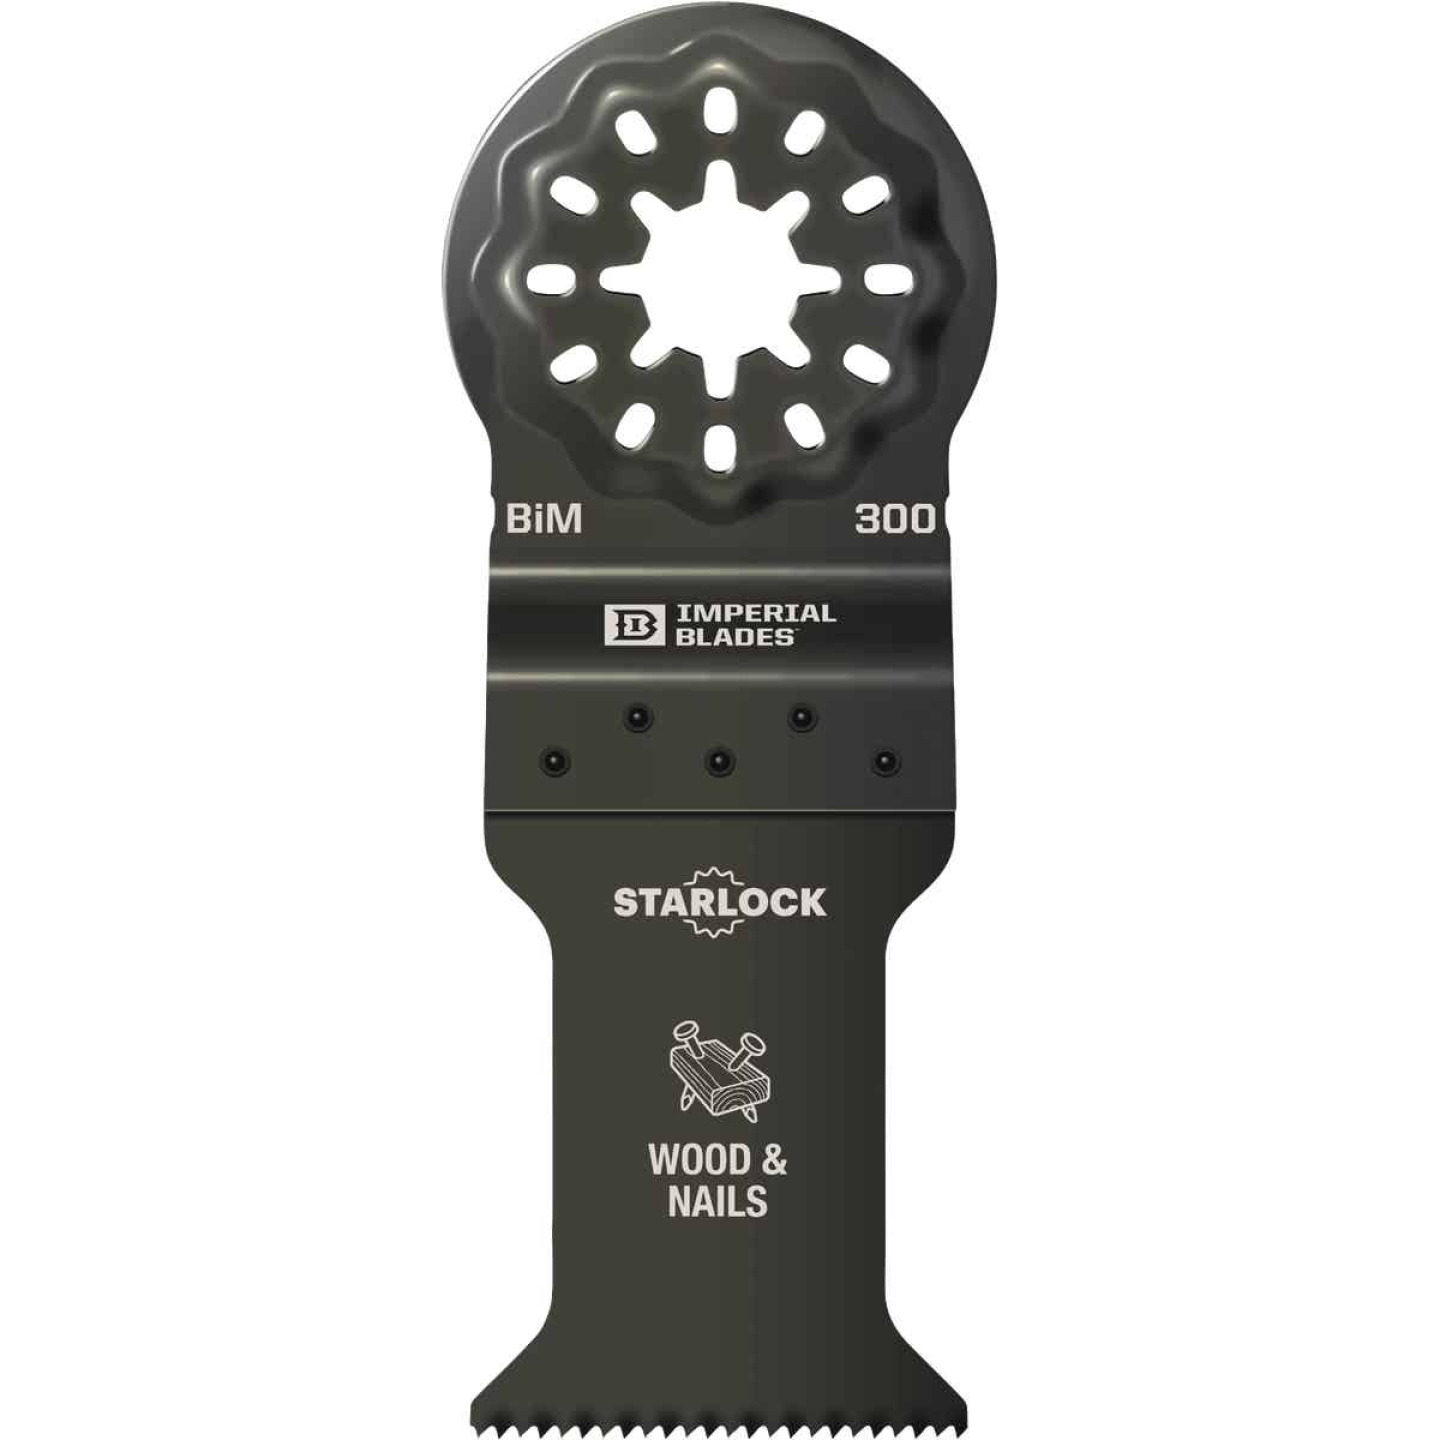 Imperial Blades Starlock 1-3/8 In. 18 TPI Wood/Nail Oscillating Blade Image 1